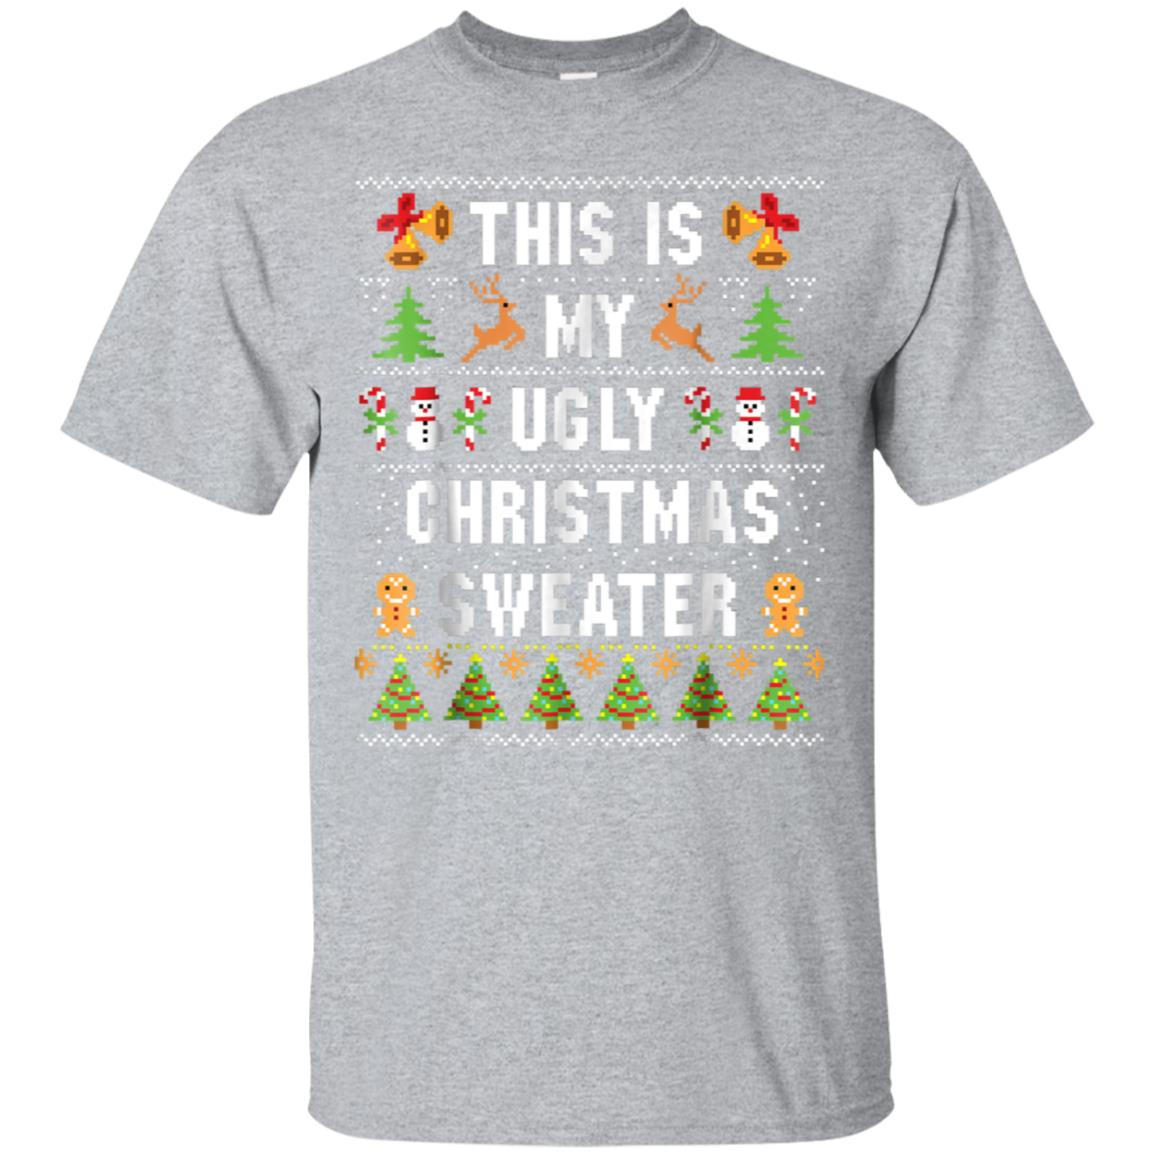 Ugly Christmas Sweater Funny.This Is My Ugly Christmas Sweater Funny Holiday T Shirt